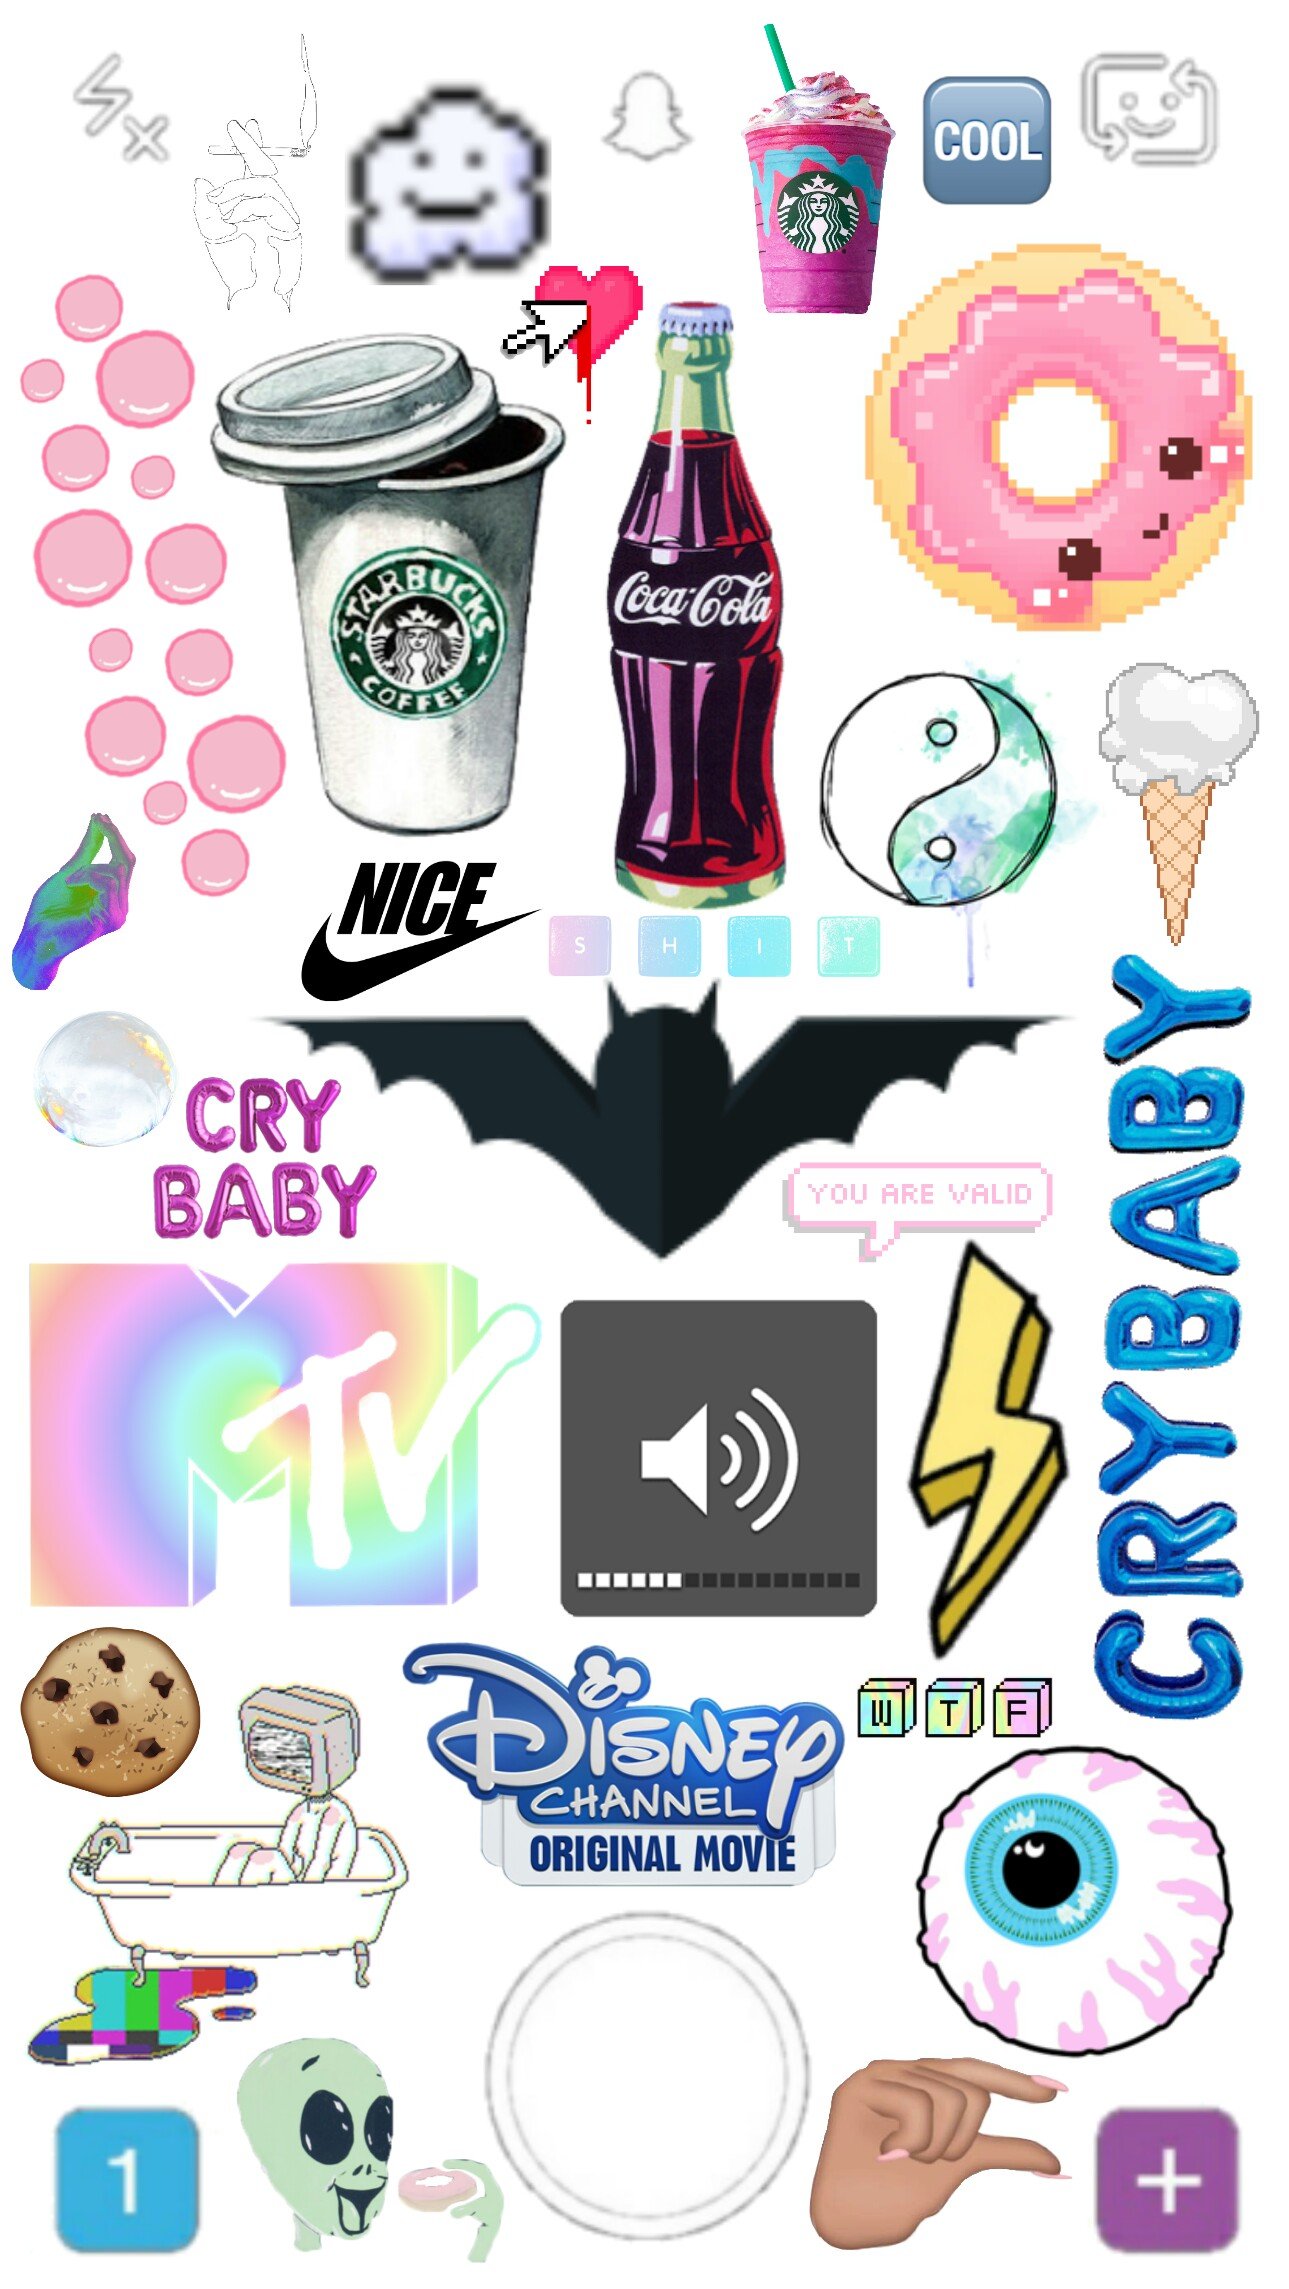 Collage Tumblr Sticker Stickers Cool Fondodepantalla